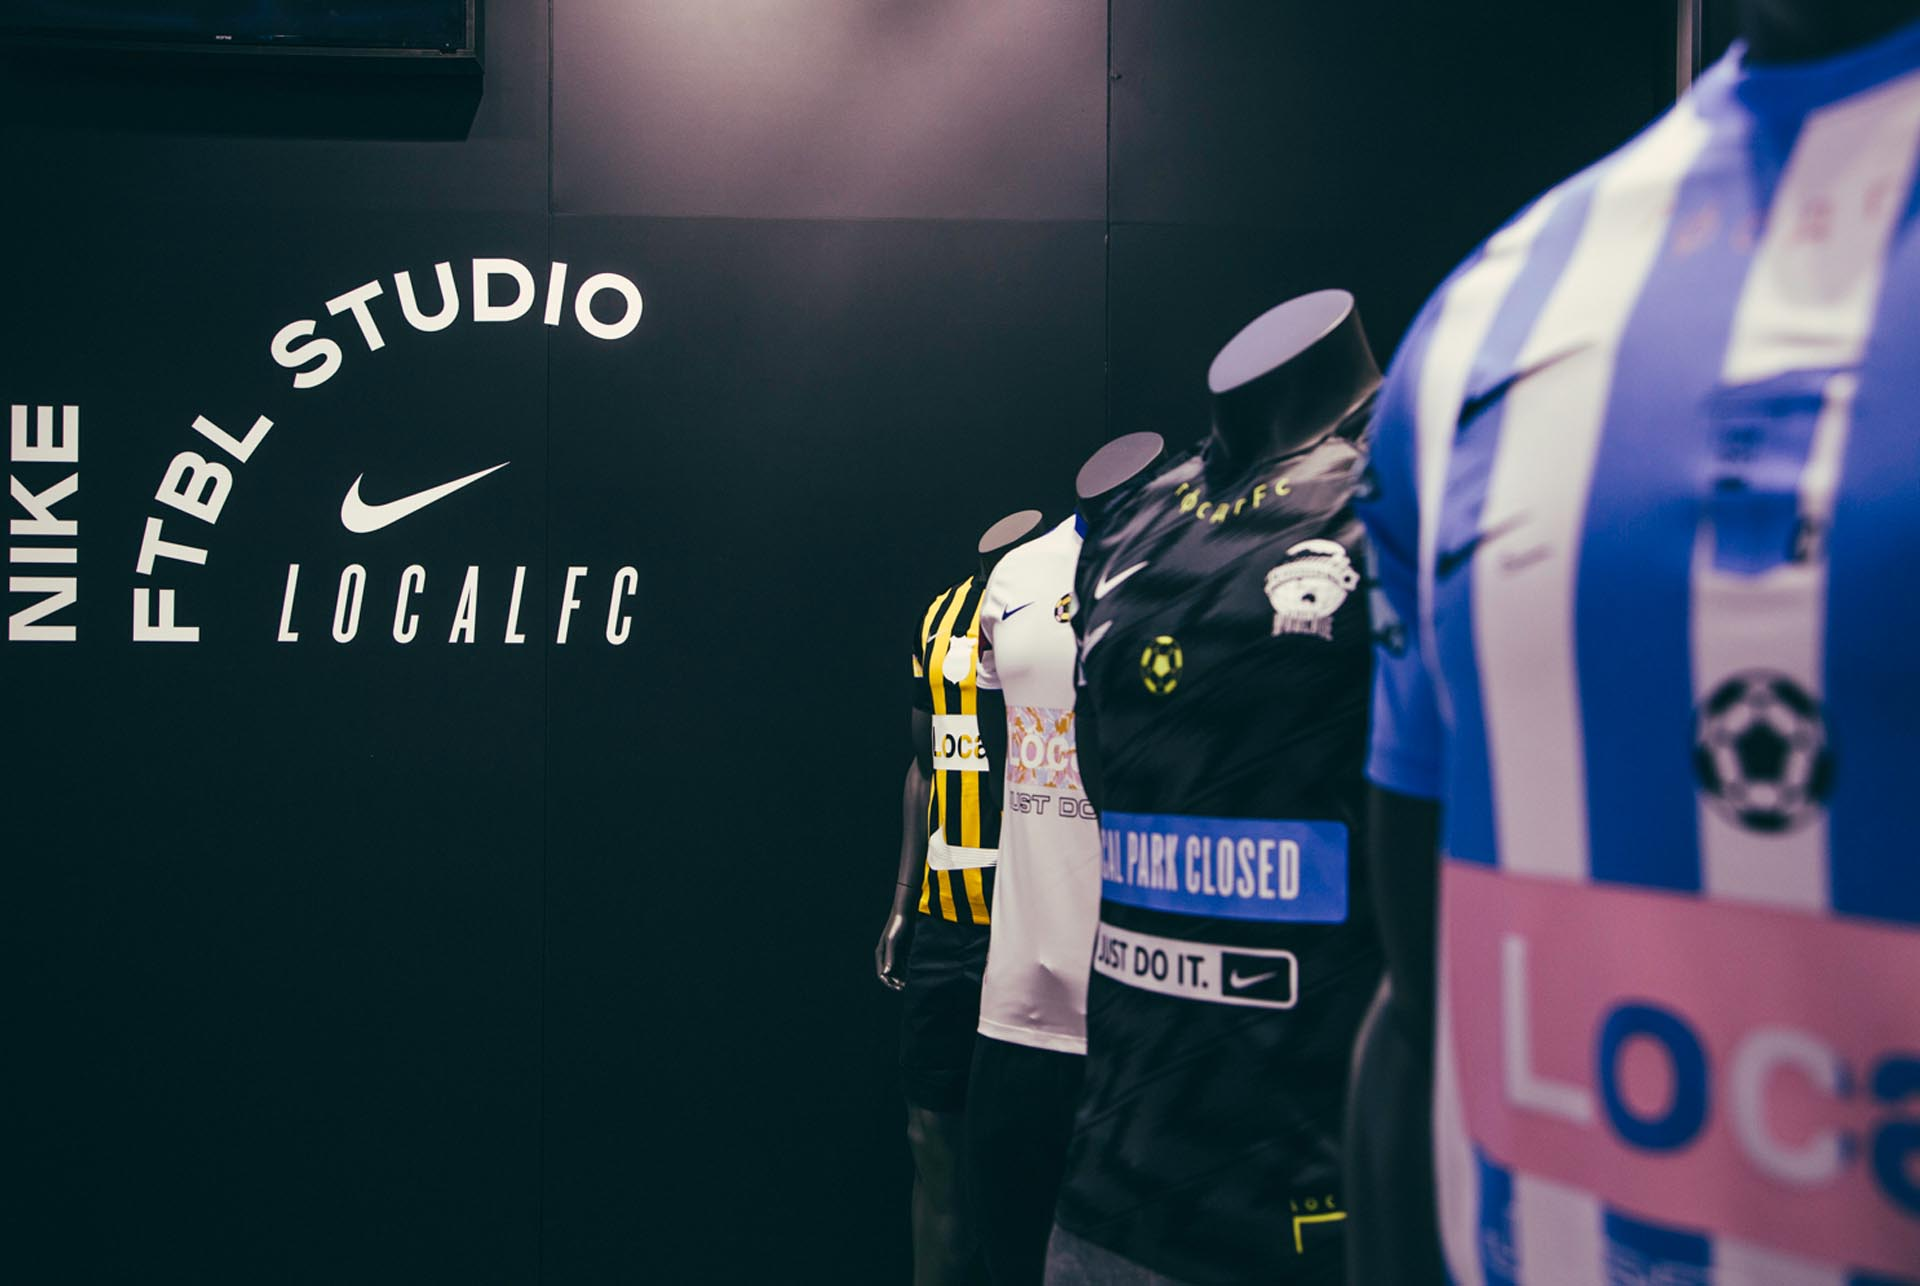 21-local-fc-nike-jersey-workshop.jpg